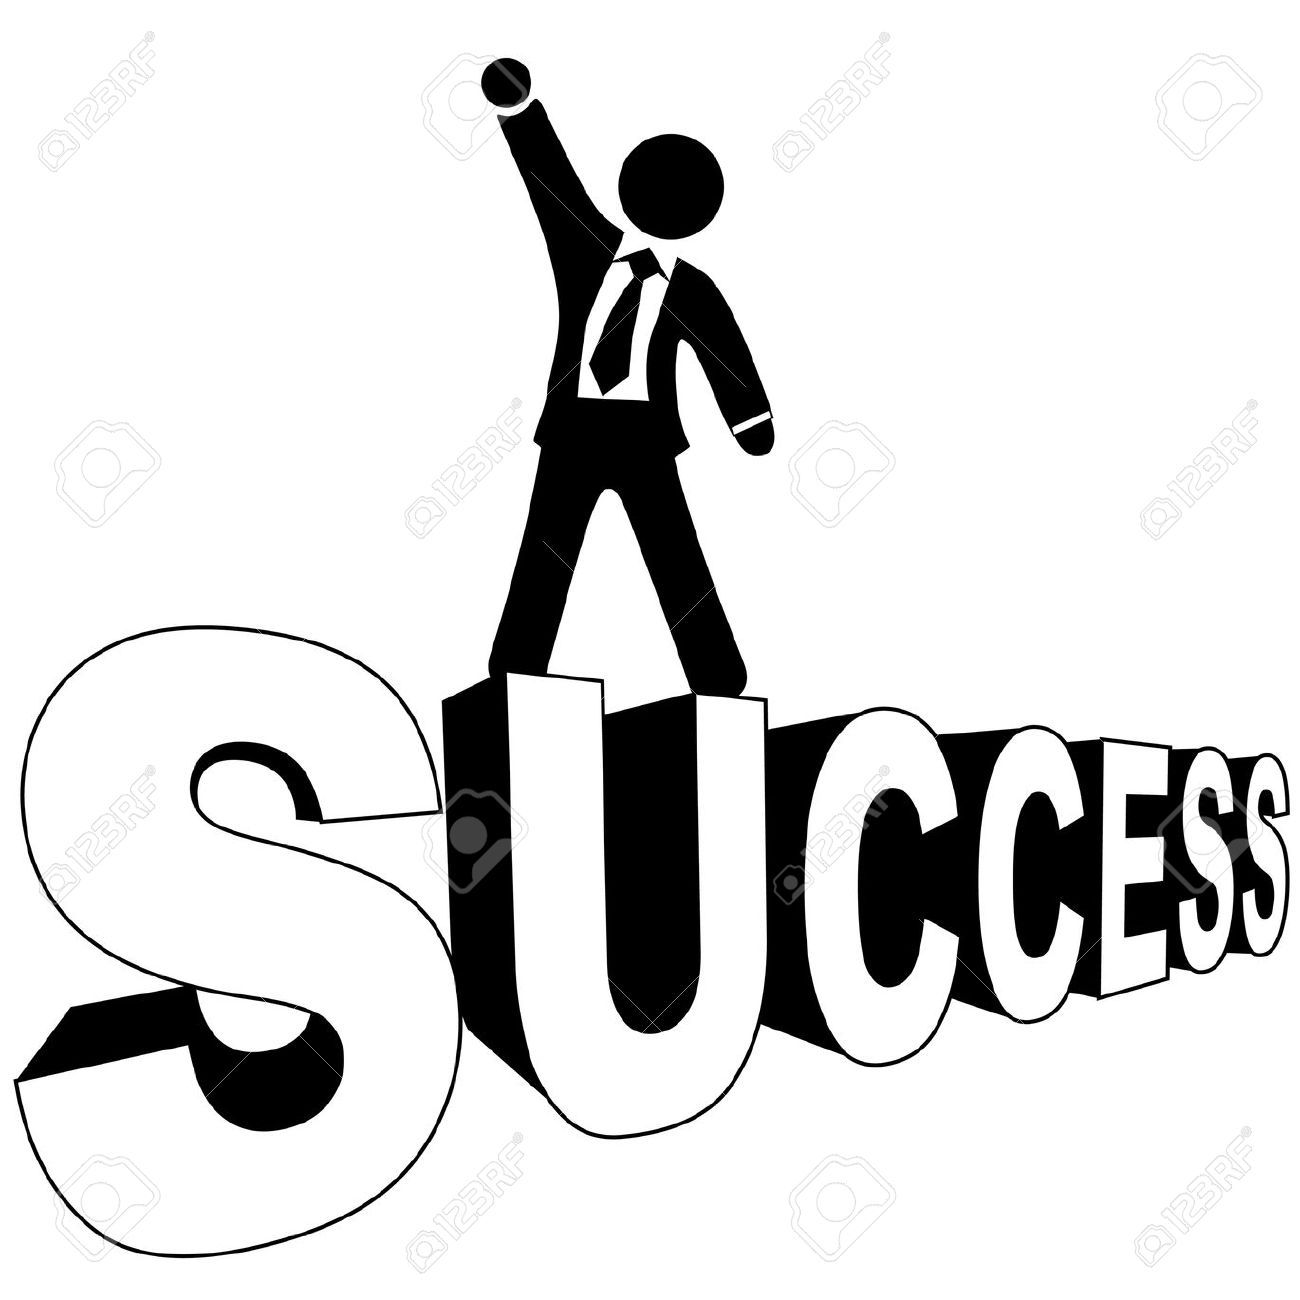 5 years sucess clipart image library download Successful clipart 5 » Clipart Portal image library download